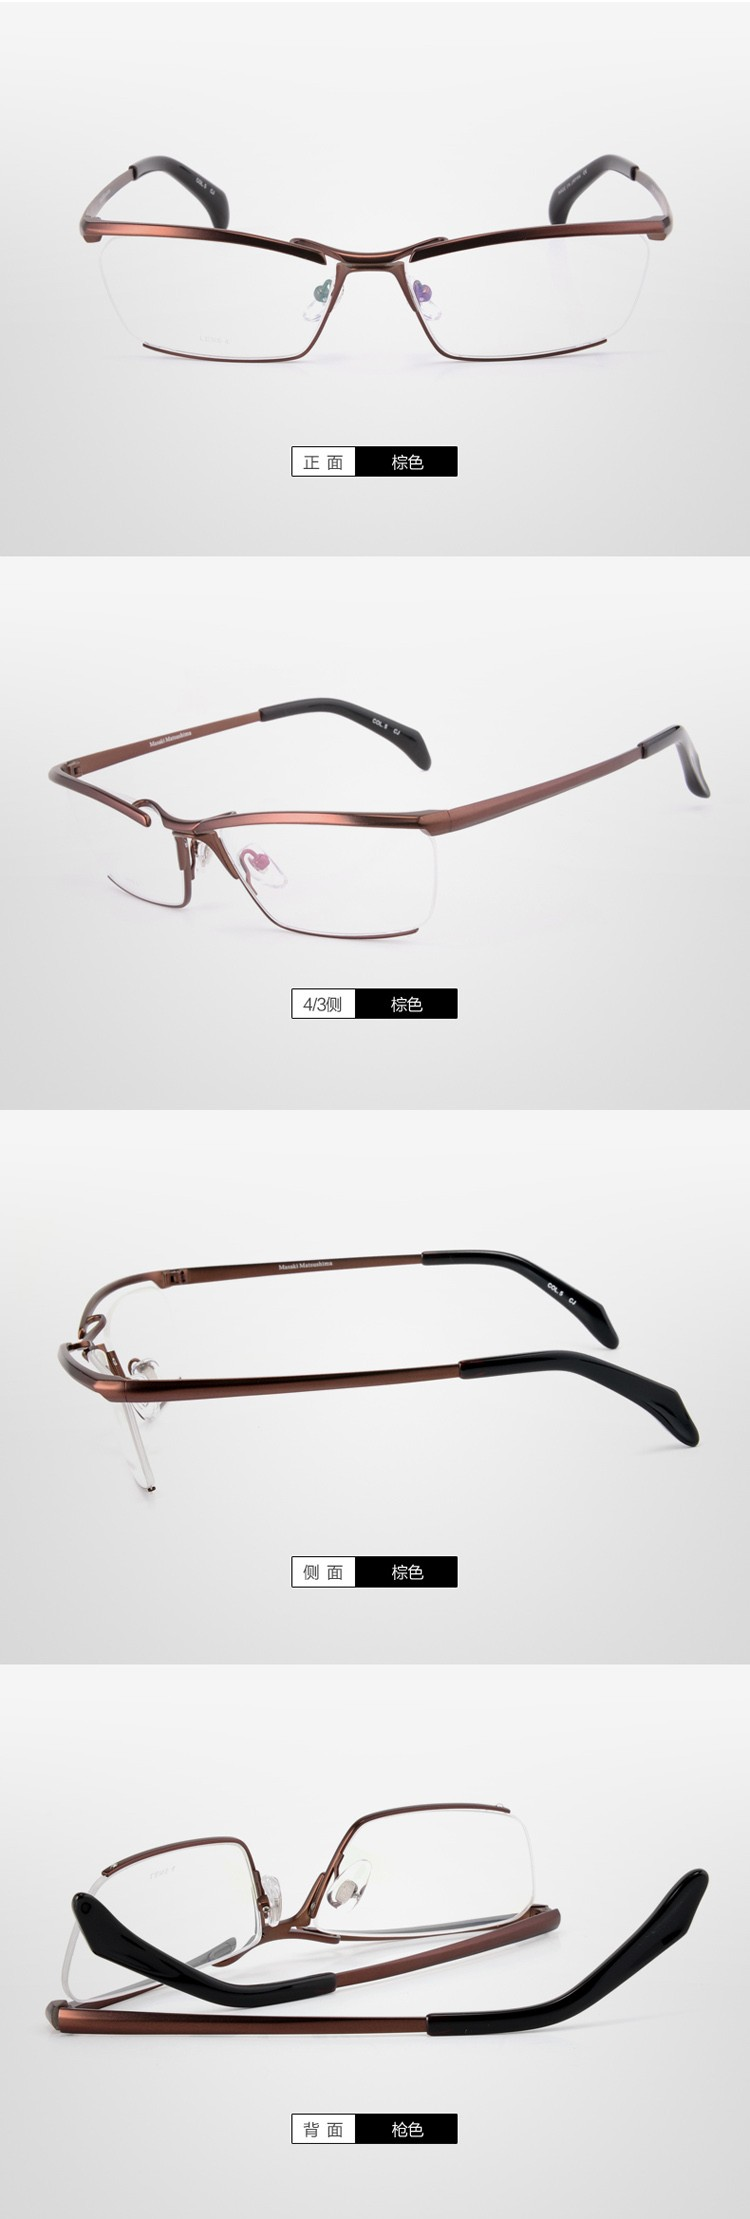 Women's Reading Glasses Dashing Sexy Fashion Cat Eye Women Classic Black Leopard Pink Reading Glasses Female Farsighted Glasses Frame Presbyopia High Quality A Complete Range Of Specifications